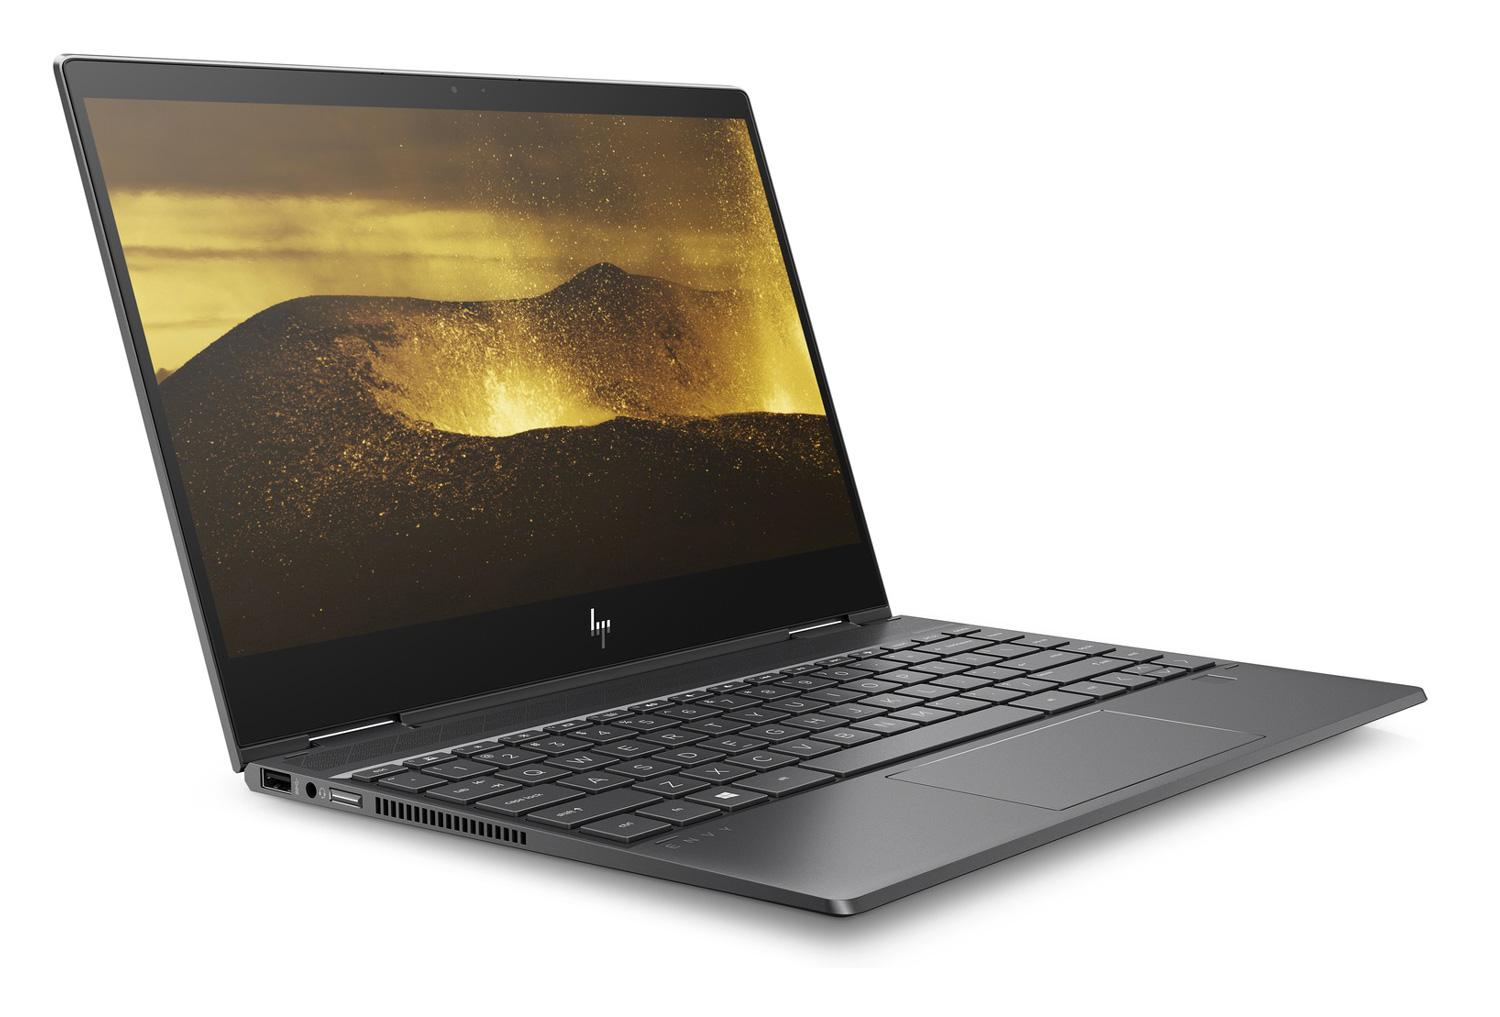 Ordinateur portable HP Envy x360 13-ar0009nf Noir tactile - photo 2